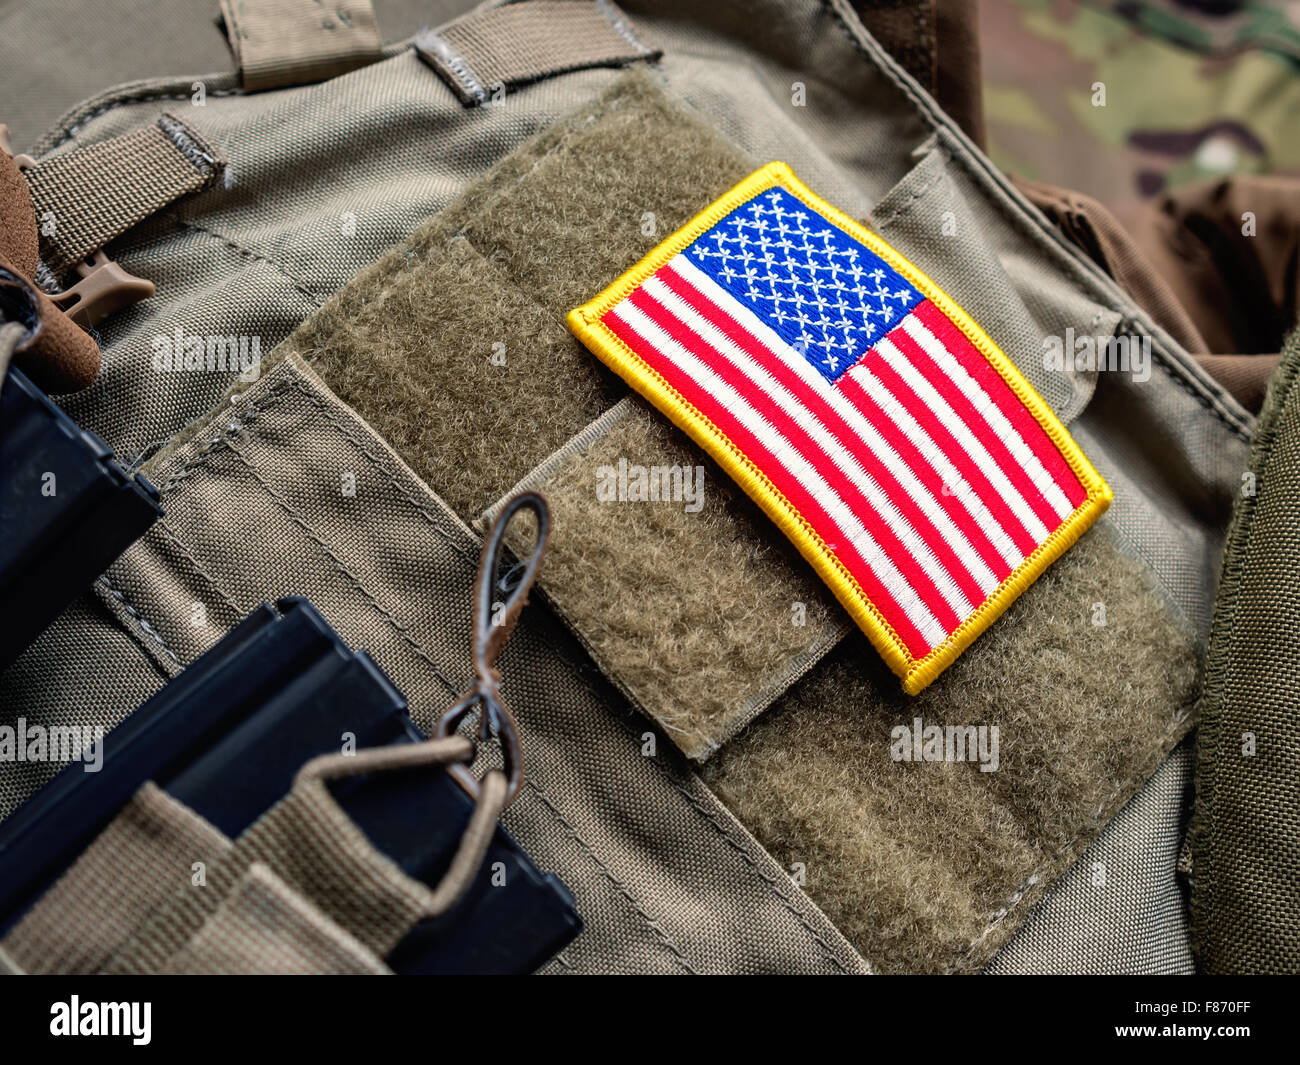 Plate carrier (bulletproof vest) with USA flag and M4 magazines Stock Photo